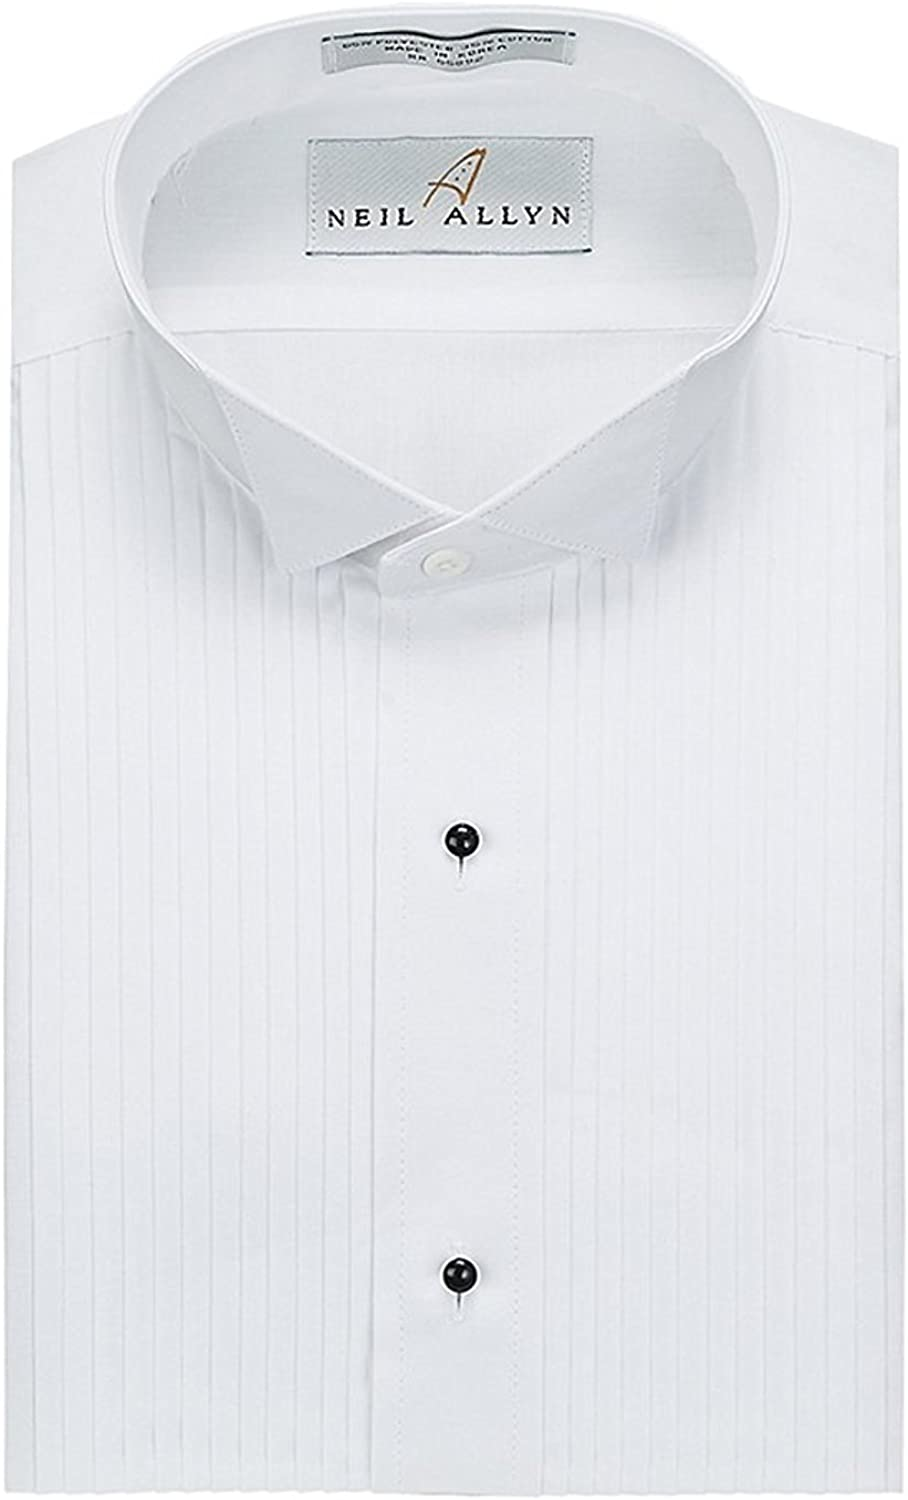 Neil Allyn Slim Fit Tuxedo Shirt - 100% Cotton Wing Collar with French Cuffs,White,X-Large (17) Neck 34/35 Sleeve